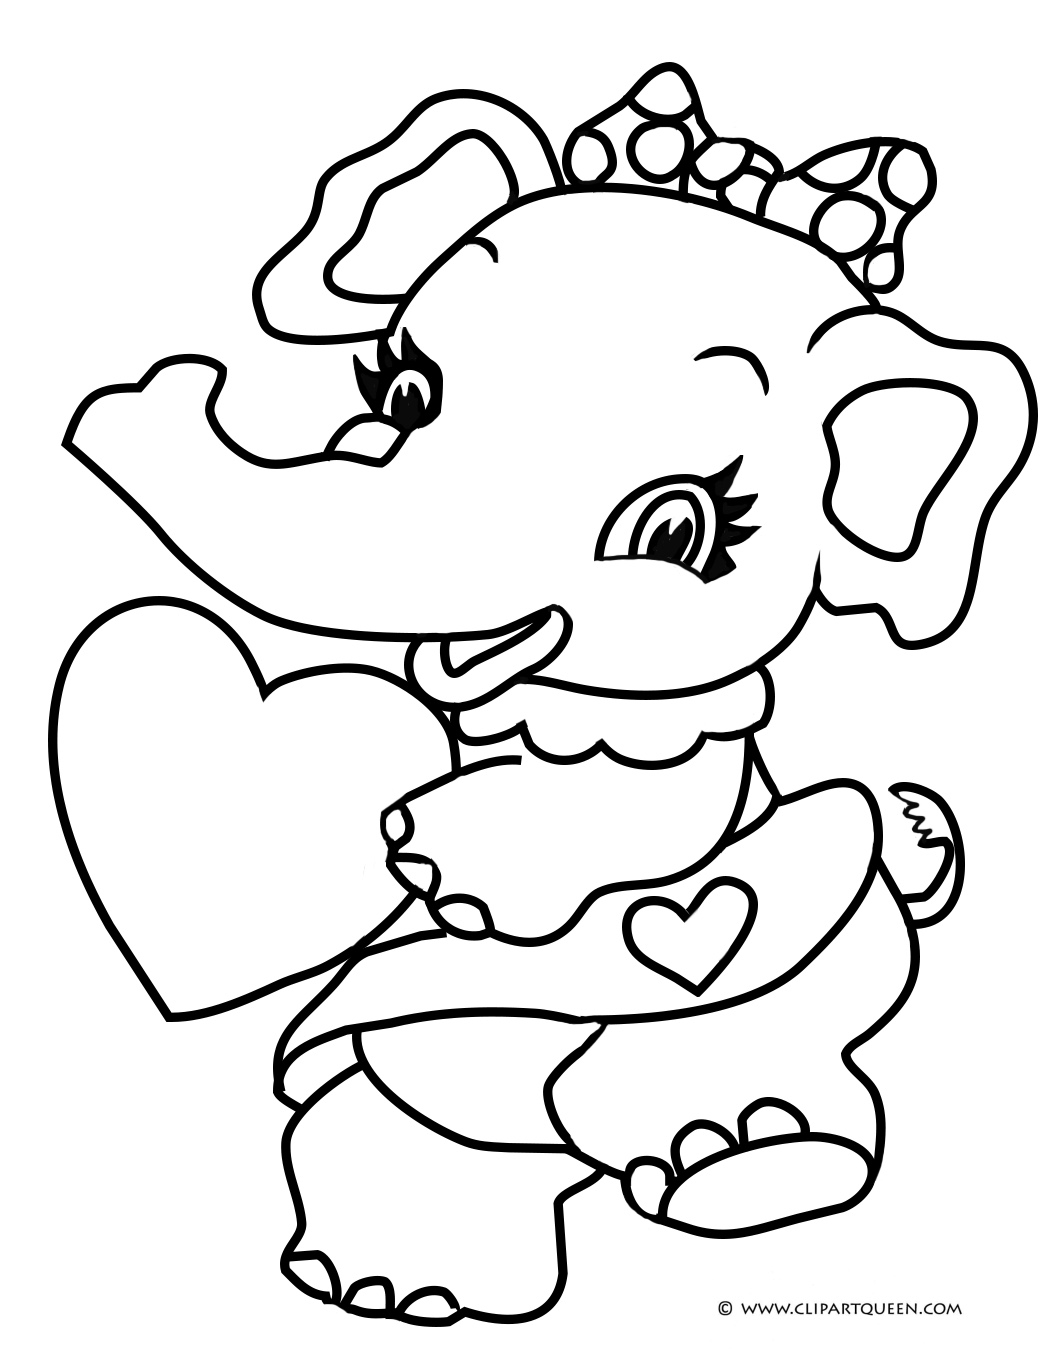 15 Valentine\'s Day coloring pages